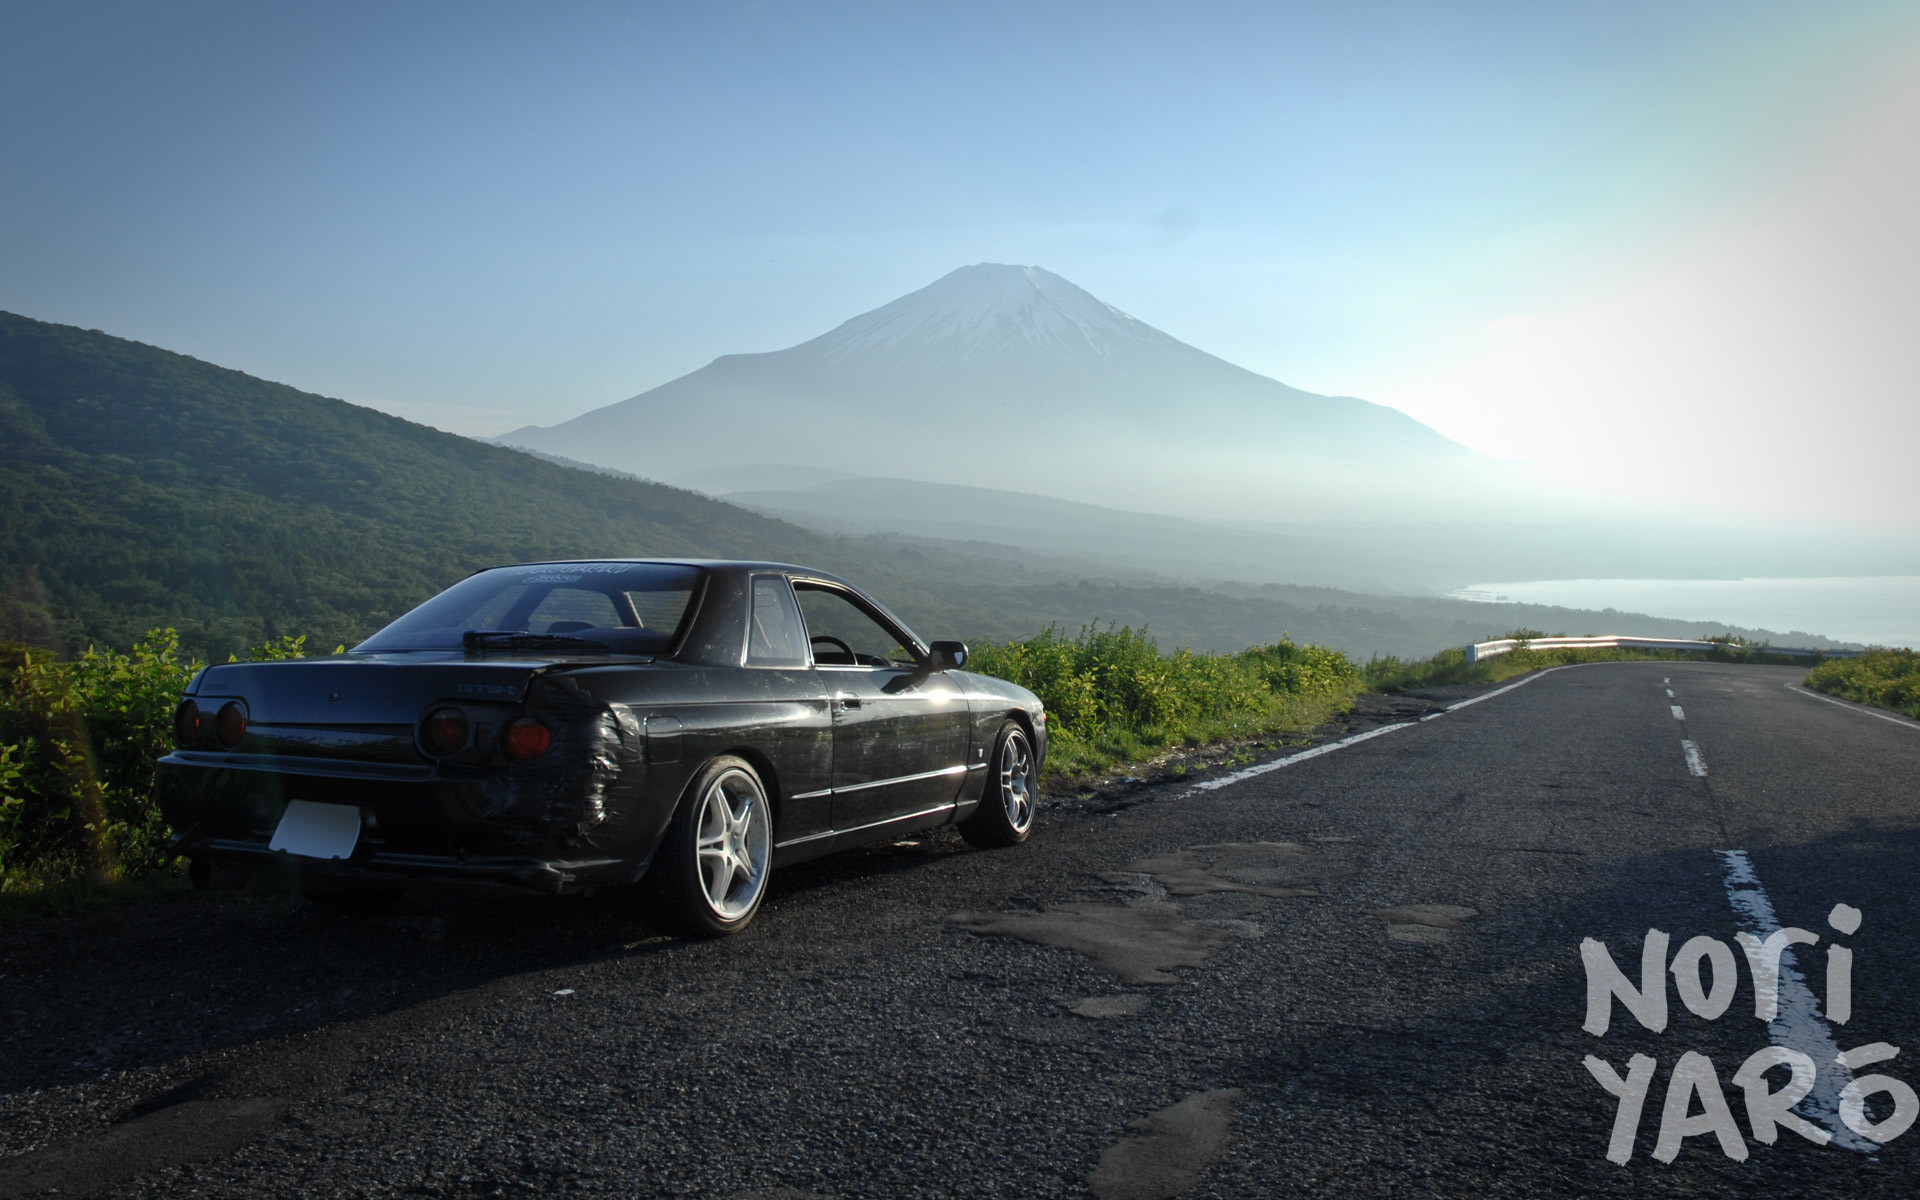 1920x1200 WALLPAPER WEDNESDAY: Skyline at Fuji, and 396 Motoring Cresta